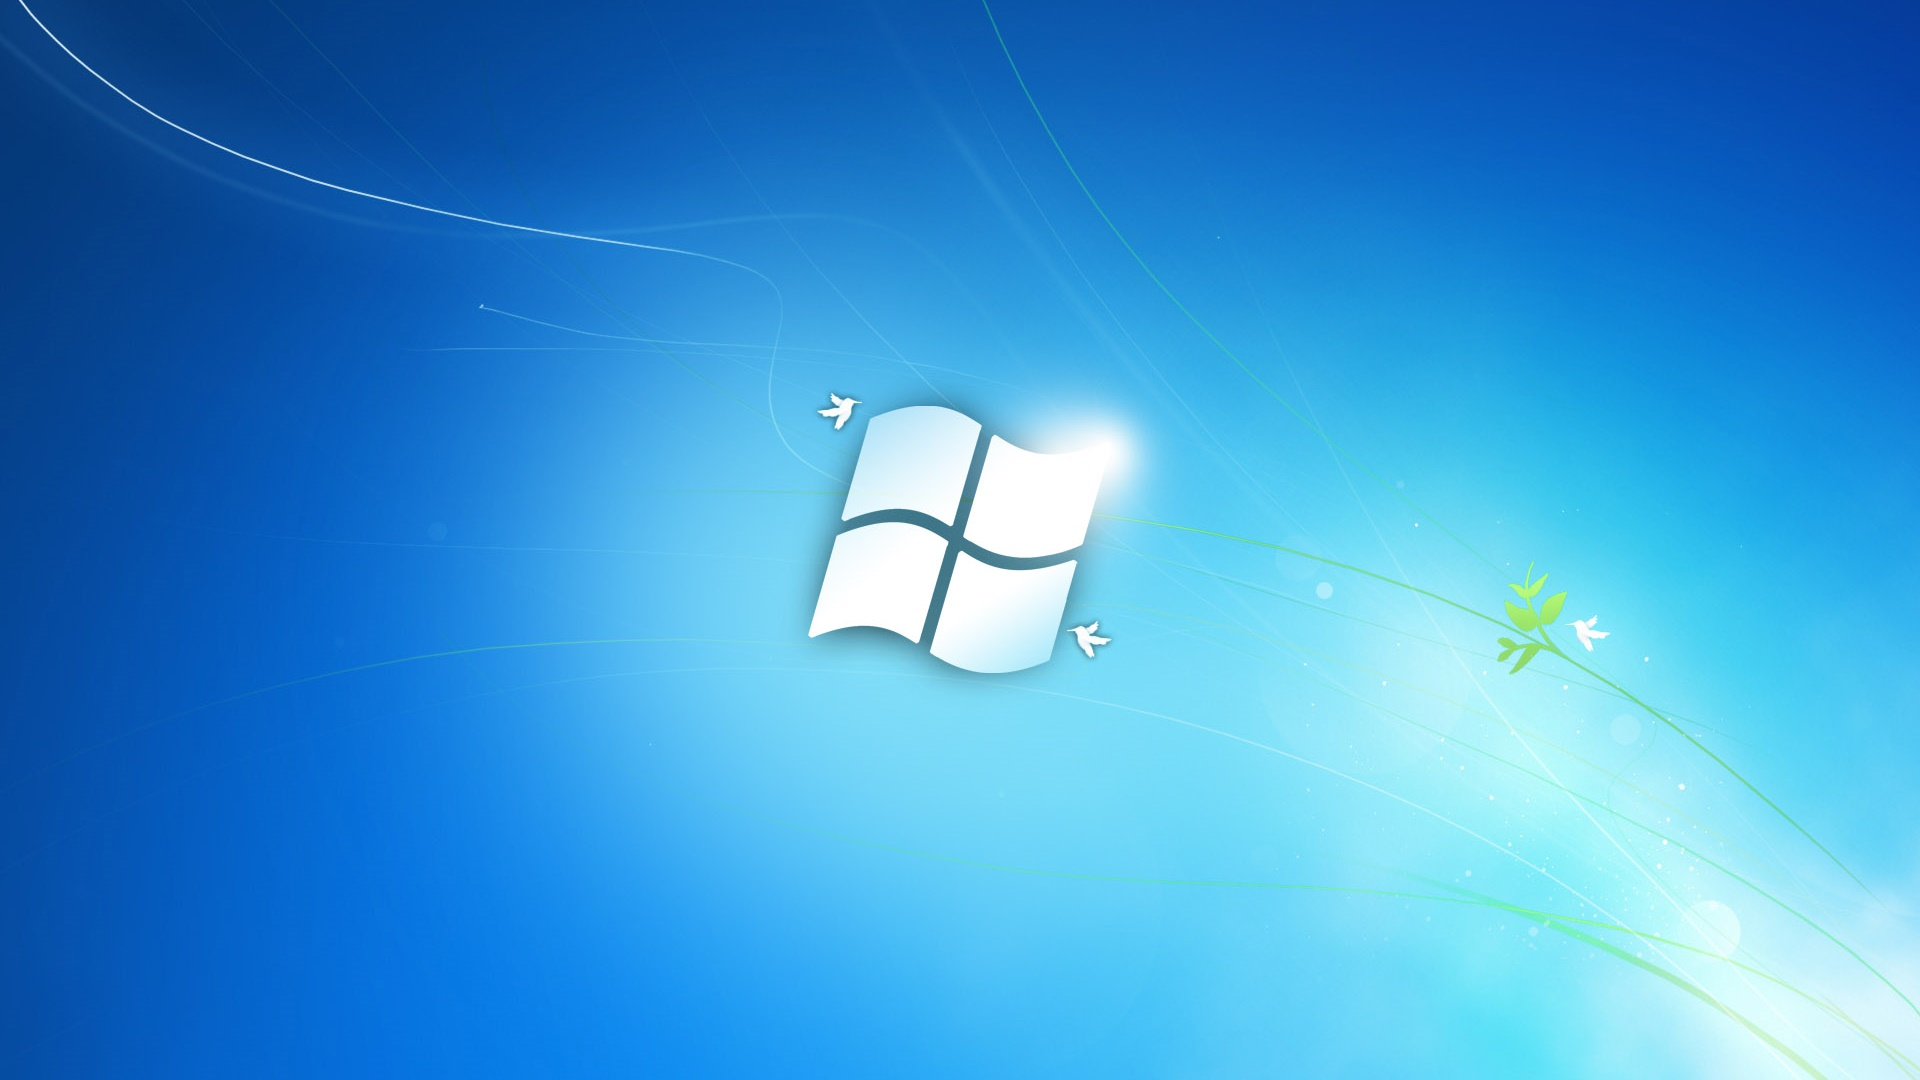 Windows 7的藍色經典風格 電腦桌布 | 1920x1080 桌布下載 | HK.HDWALL365.com Windows 7 Classic Wallpaper